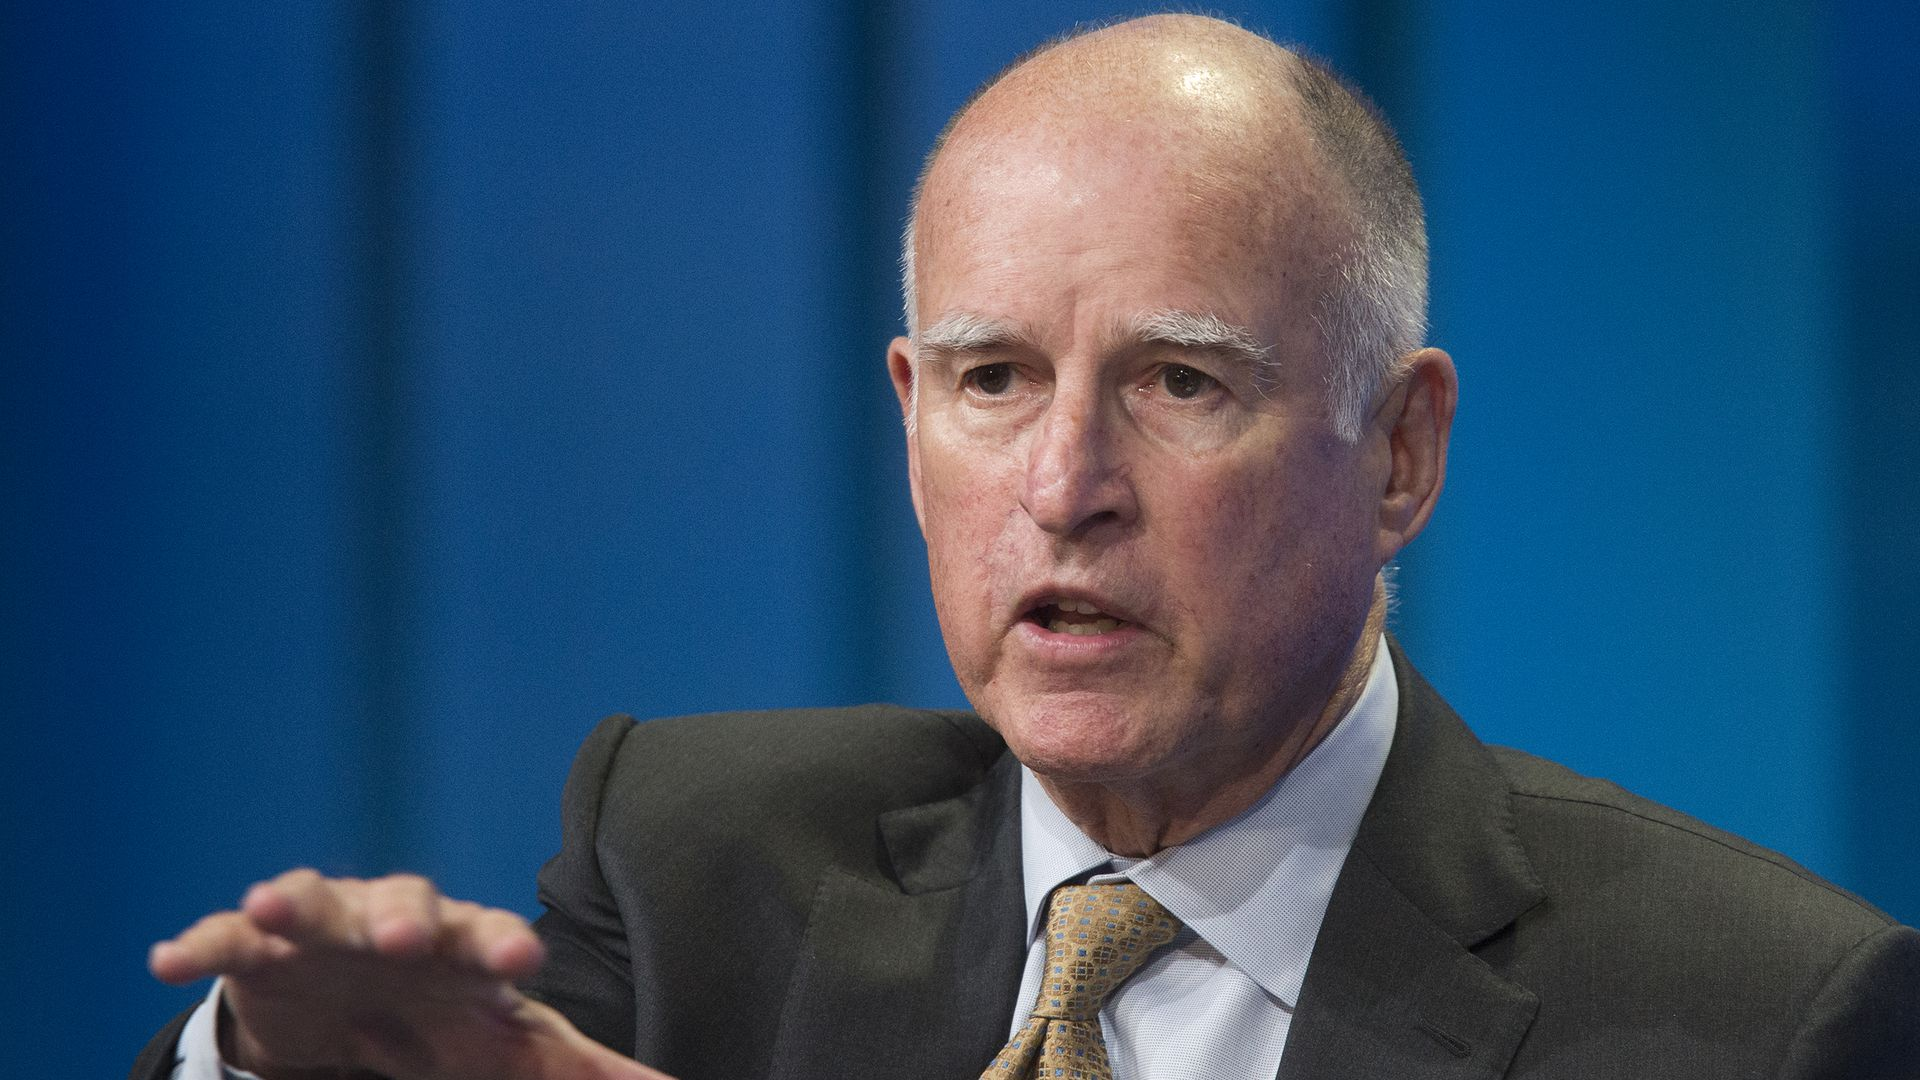 California governor in suit.